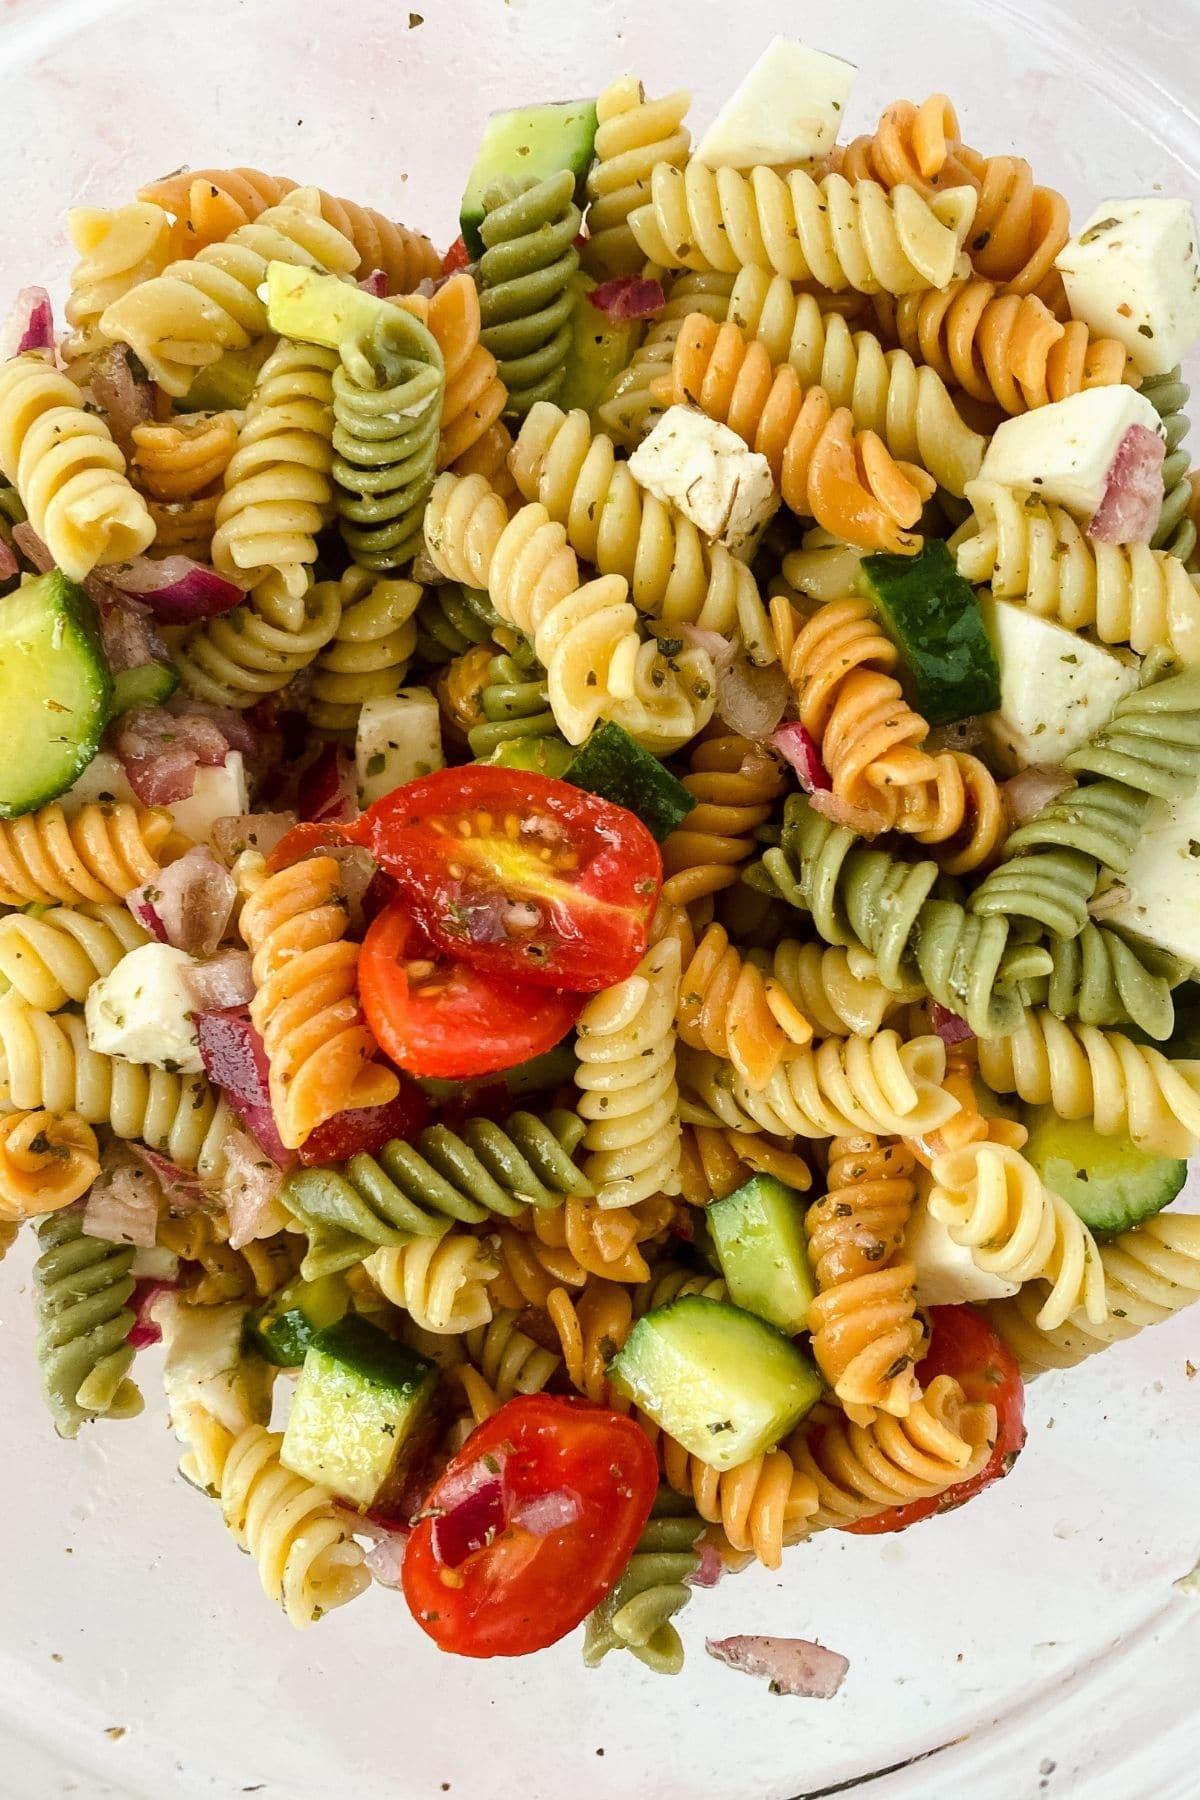 Picture from above bowl of pasta salad